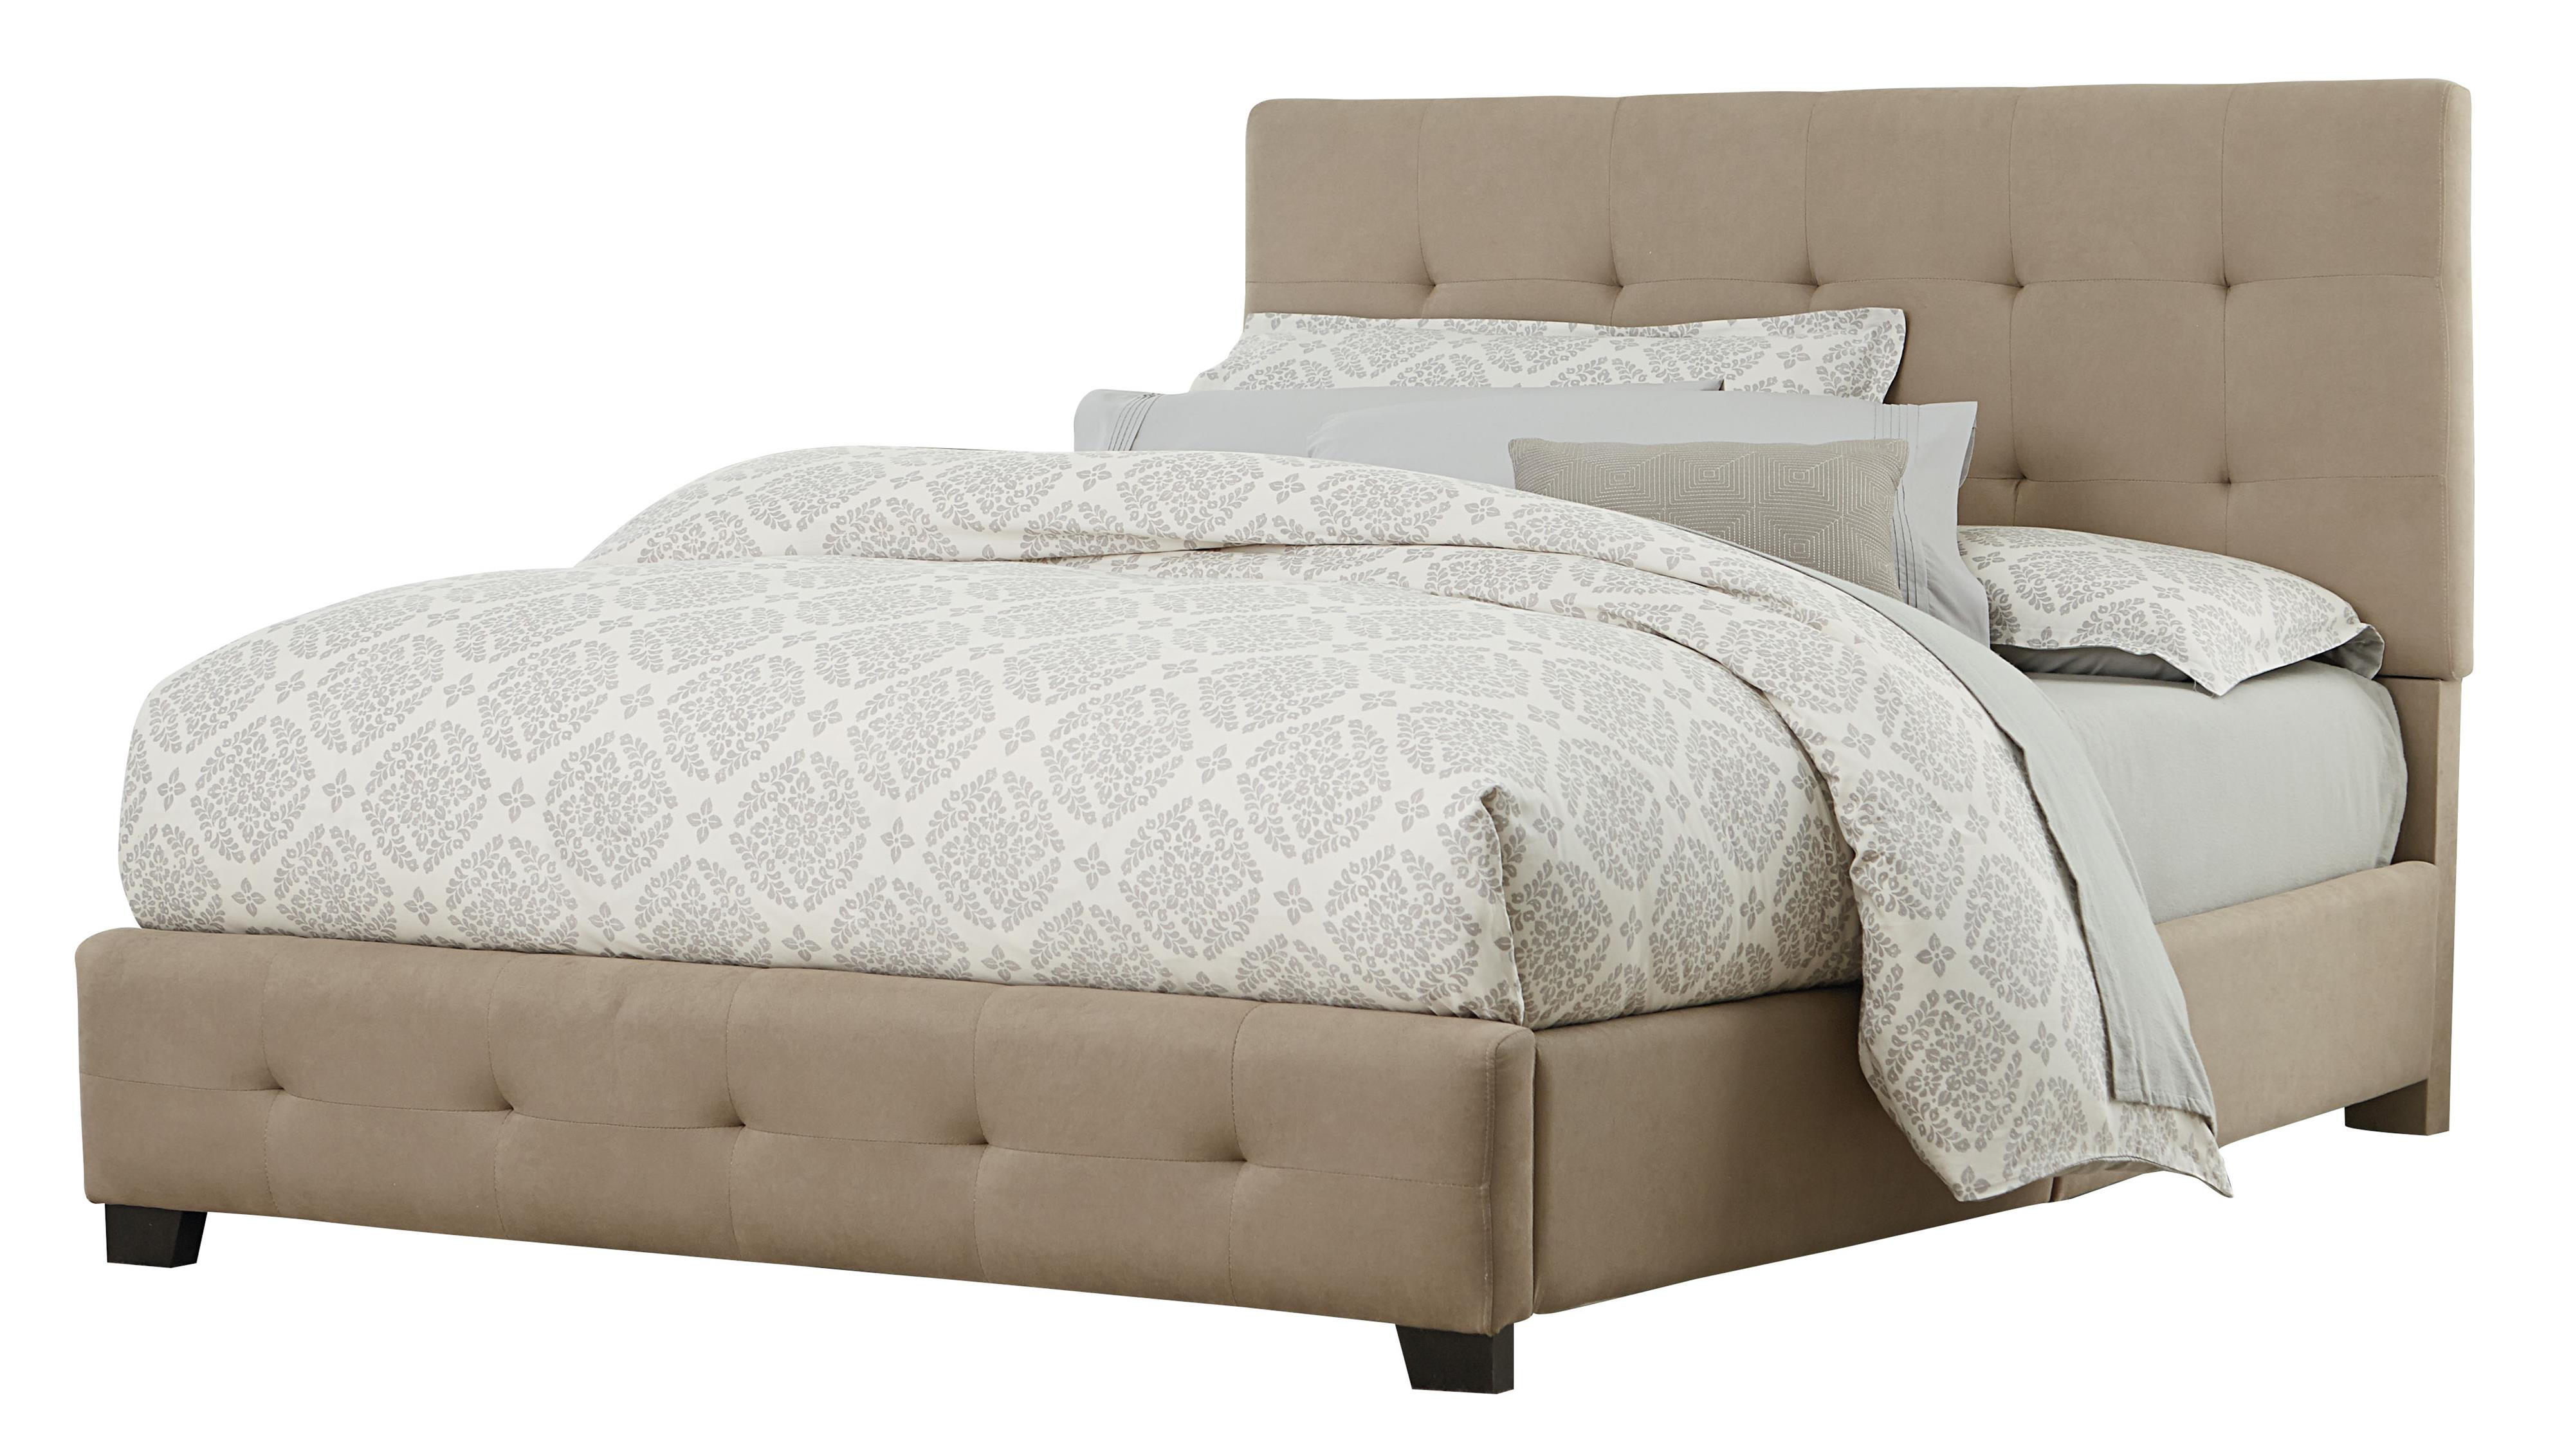 Captivating Standard Furniture Madison Square Queen Microfiber Bed   Item Number: 55675